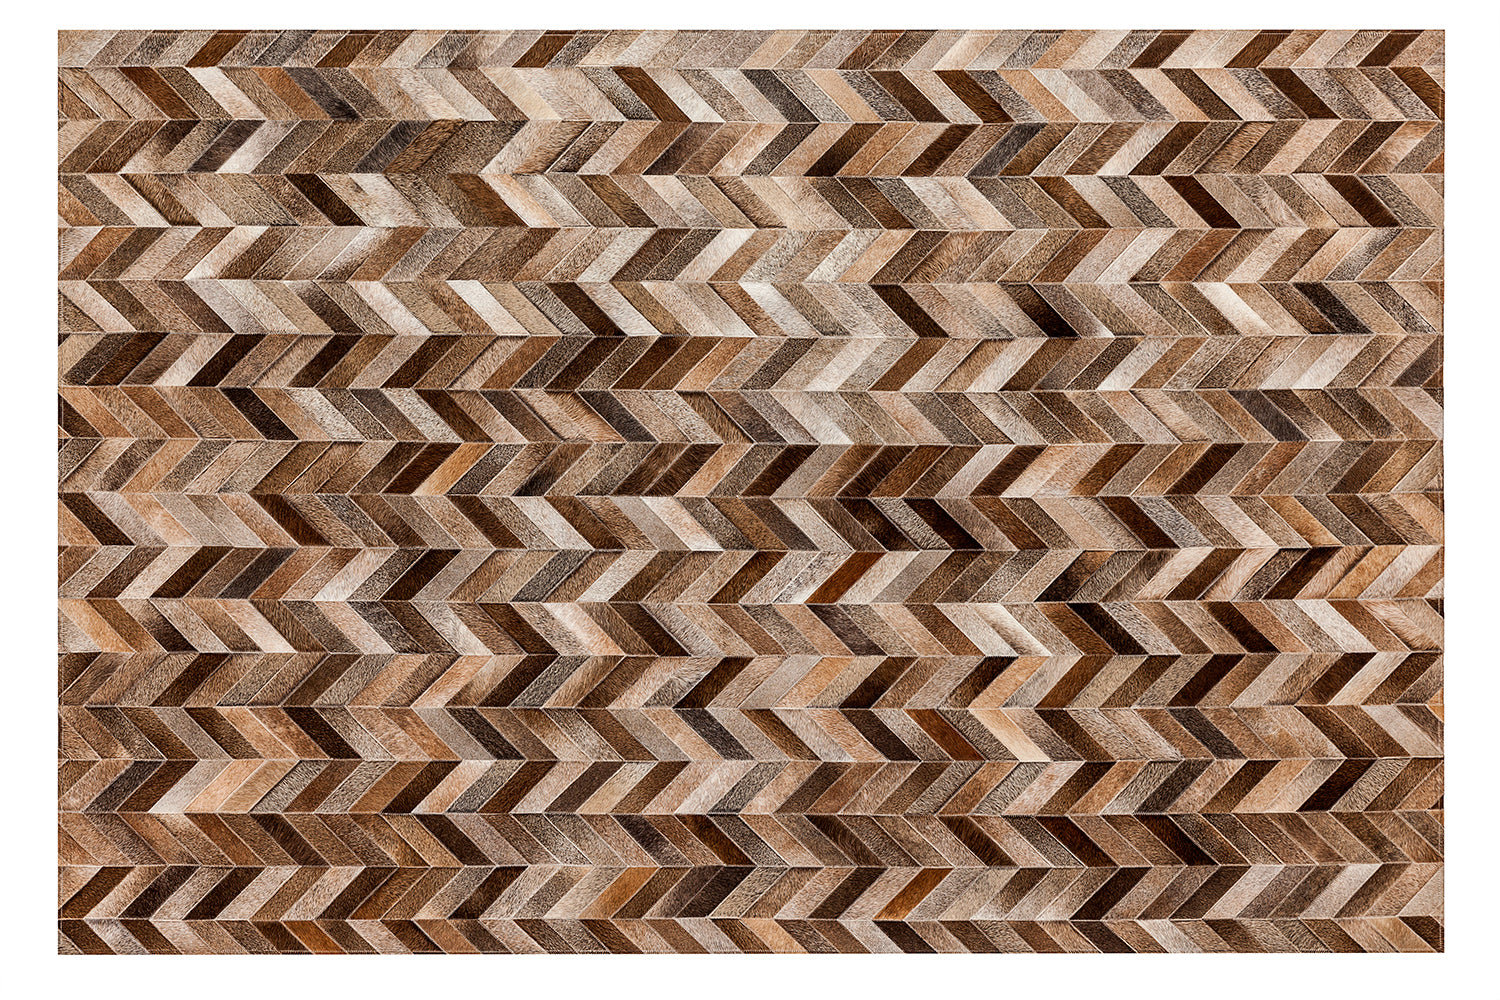 Franklin Cowhide Rug - Tan - 8 x 10 Product Image